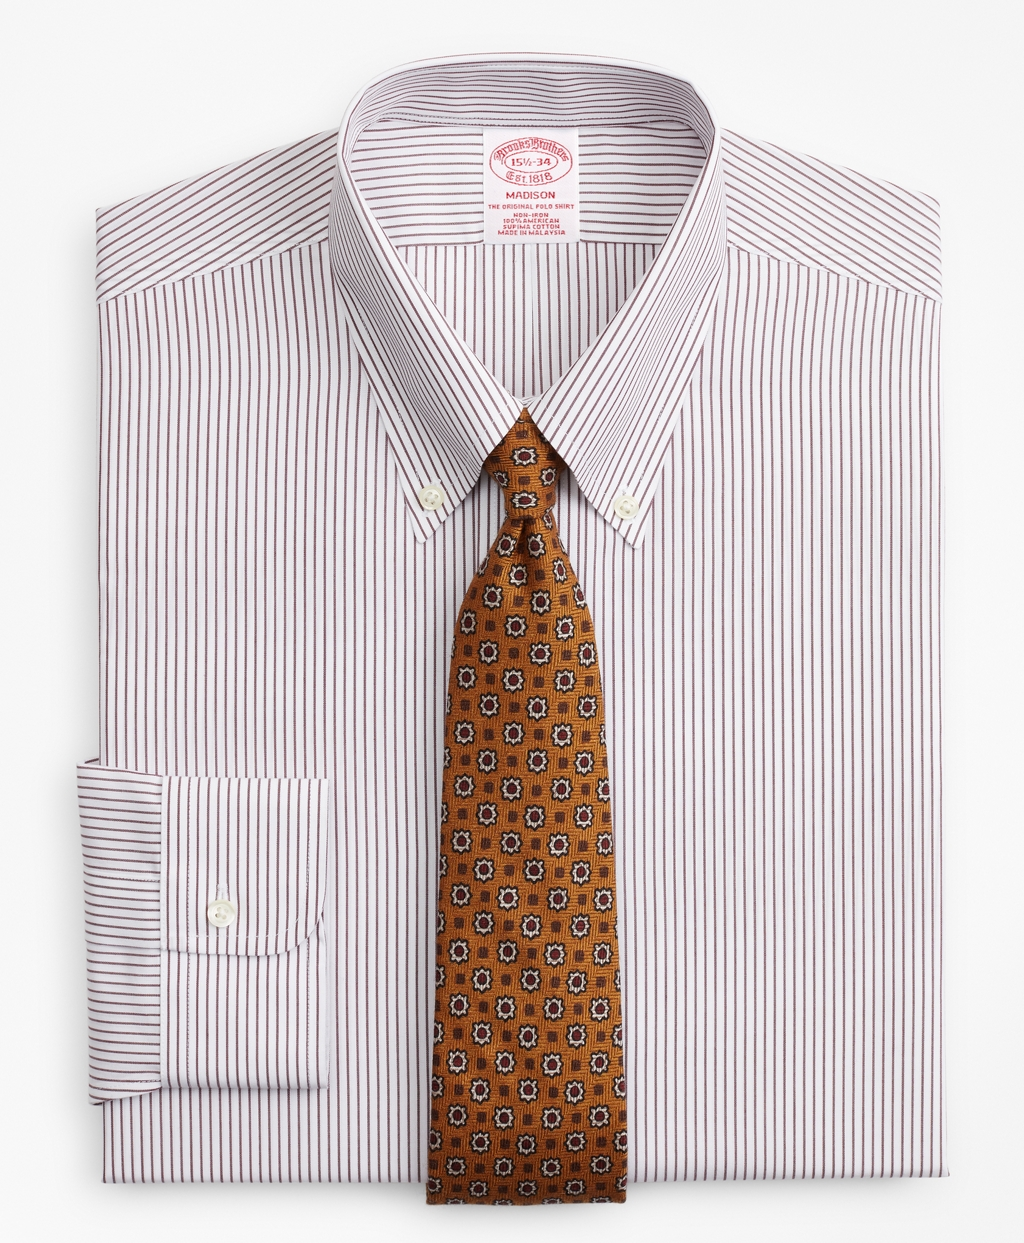 1920s Style Men's Shirts | Peaky Blinders Shirts and Collars Brooks Brothers Mens Regular Classic-Fit Dress Shirt Non-Iron Stripe $79.00 AT vintagedancer.com